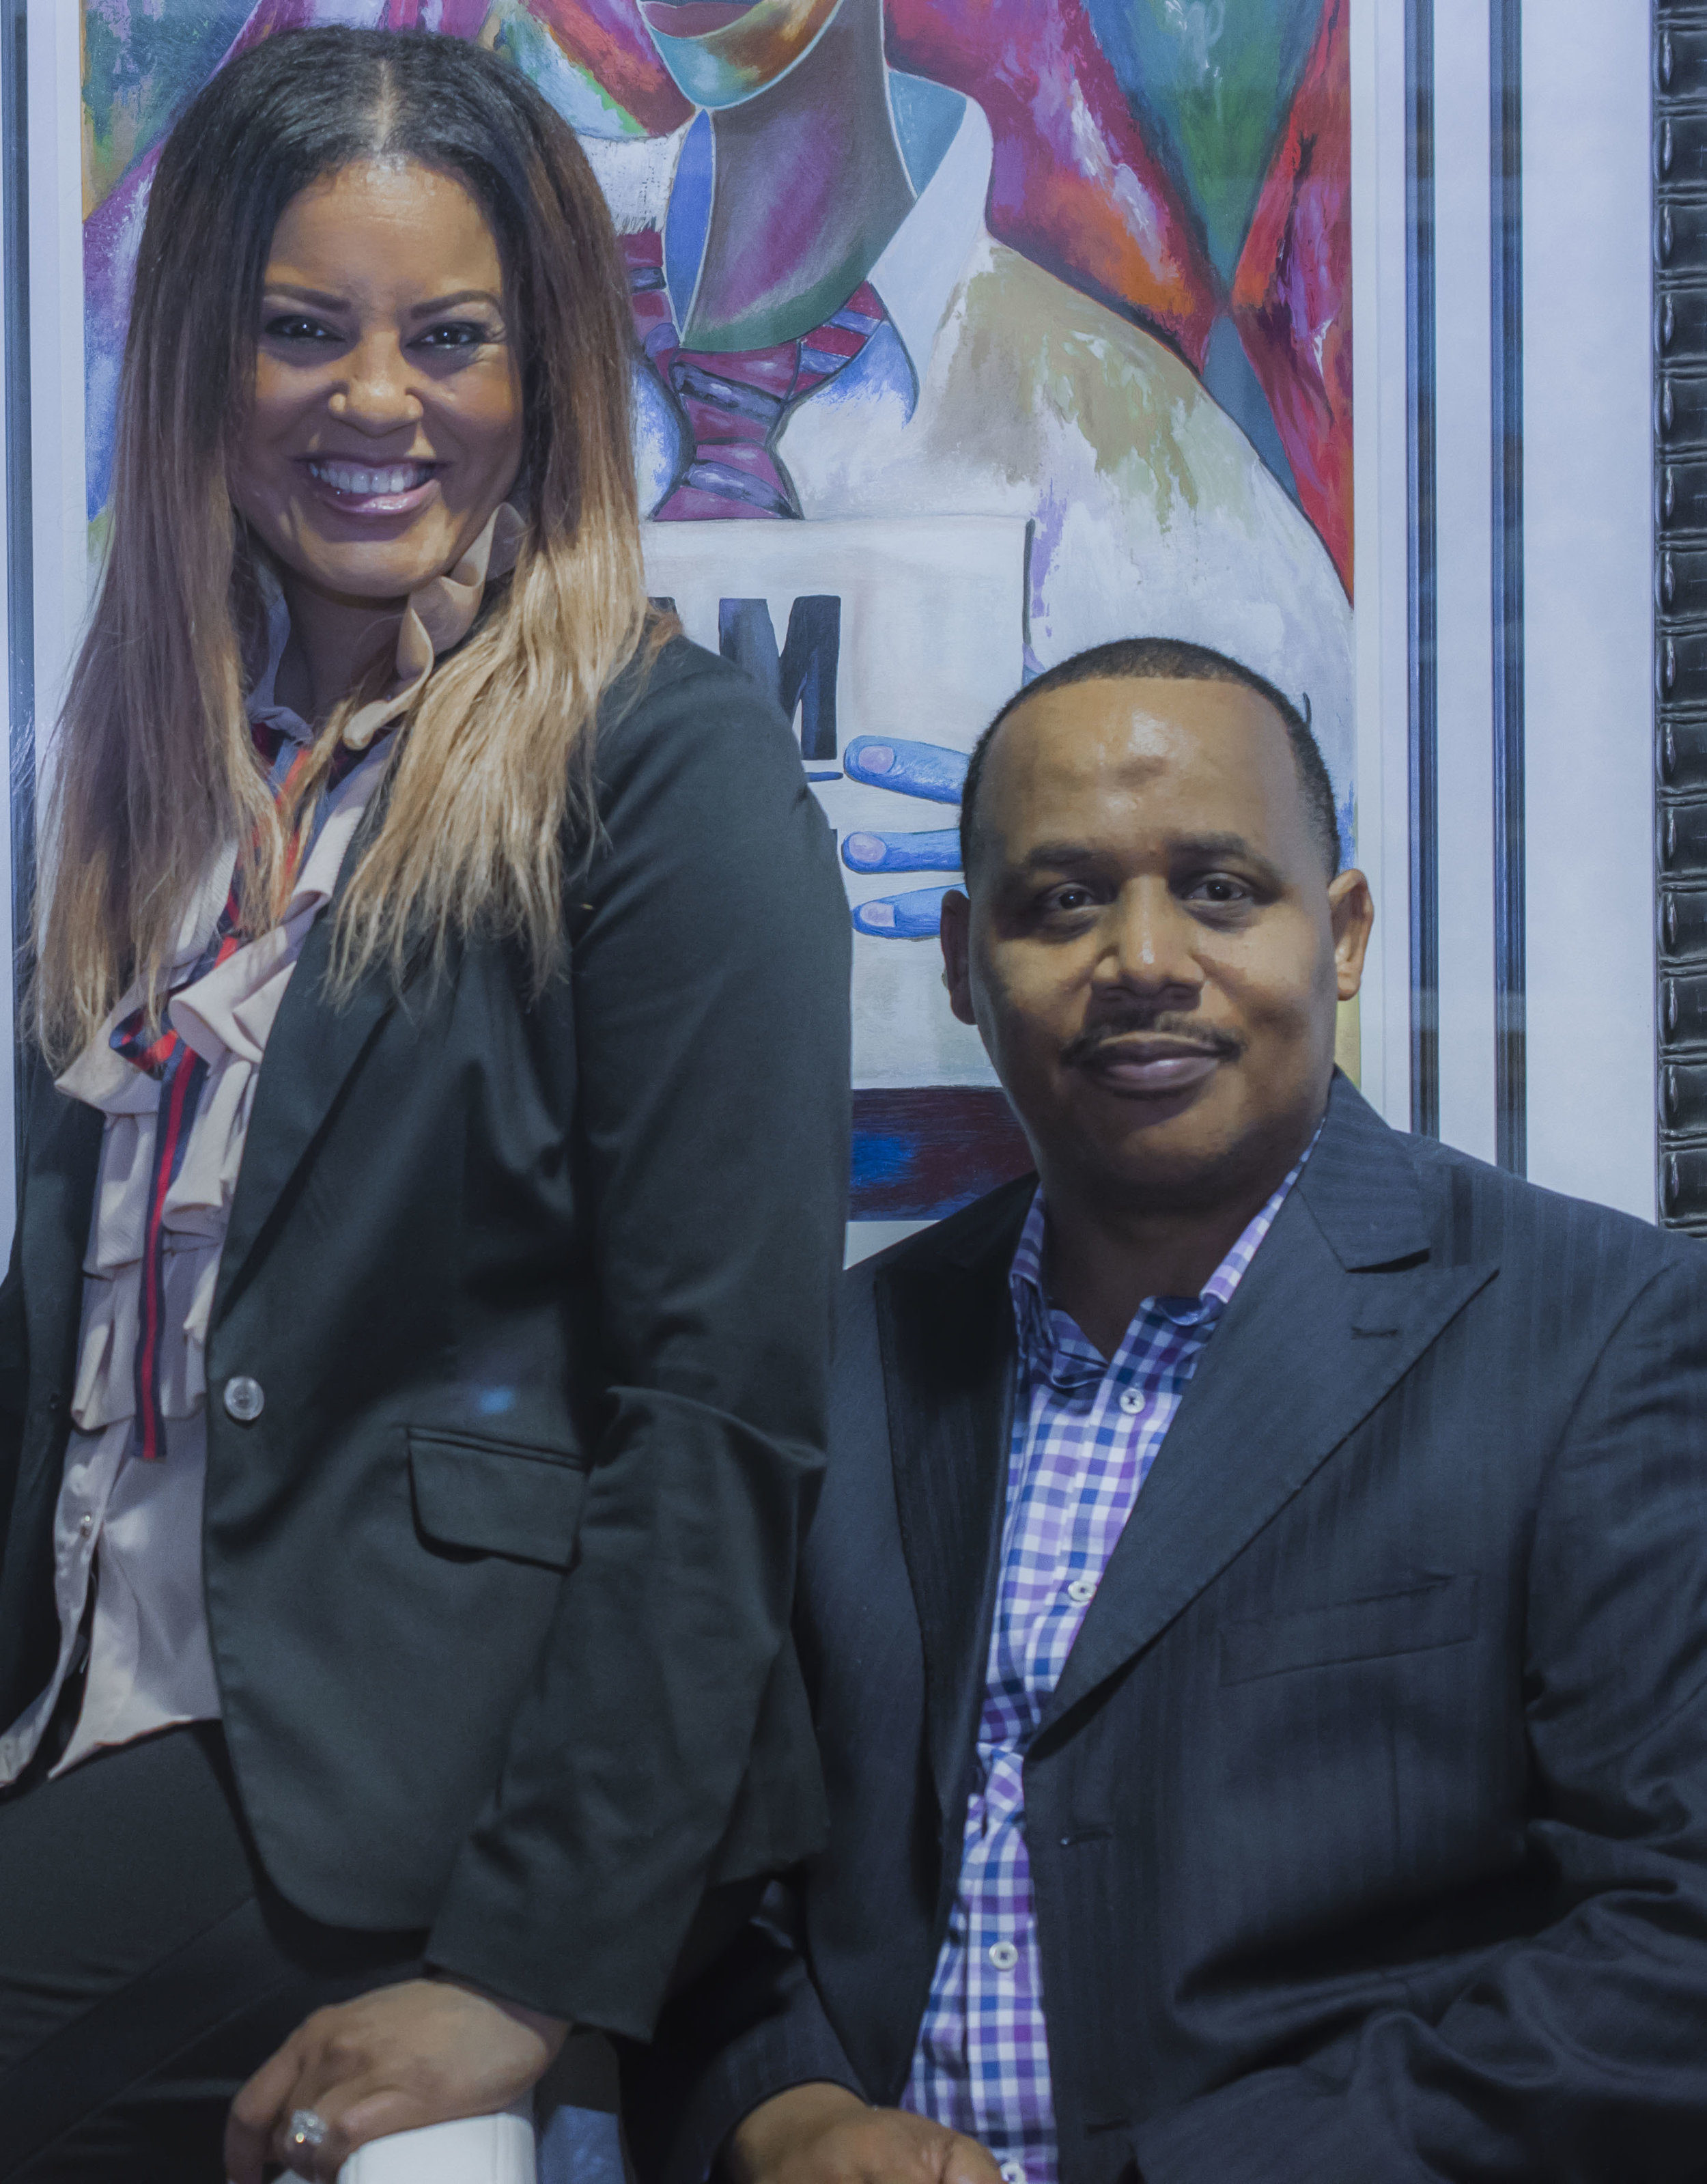 Jackie and Derrick Thompson, Overdue Recognition Art Gallery